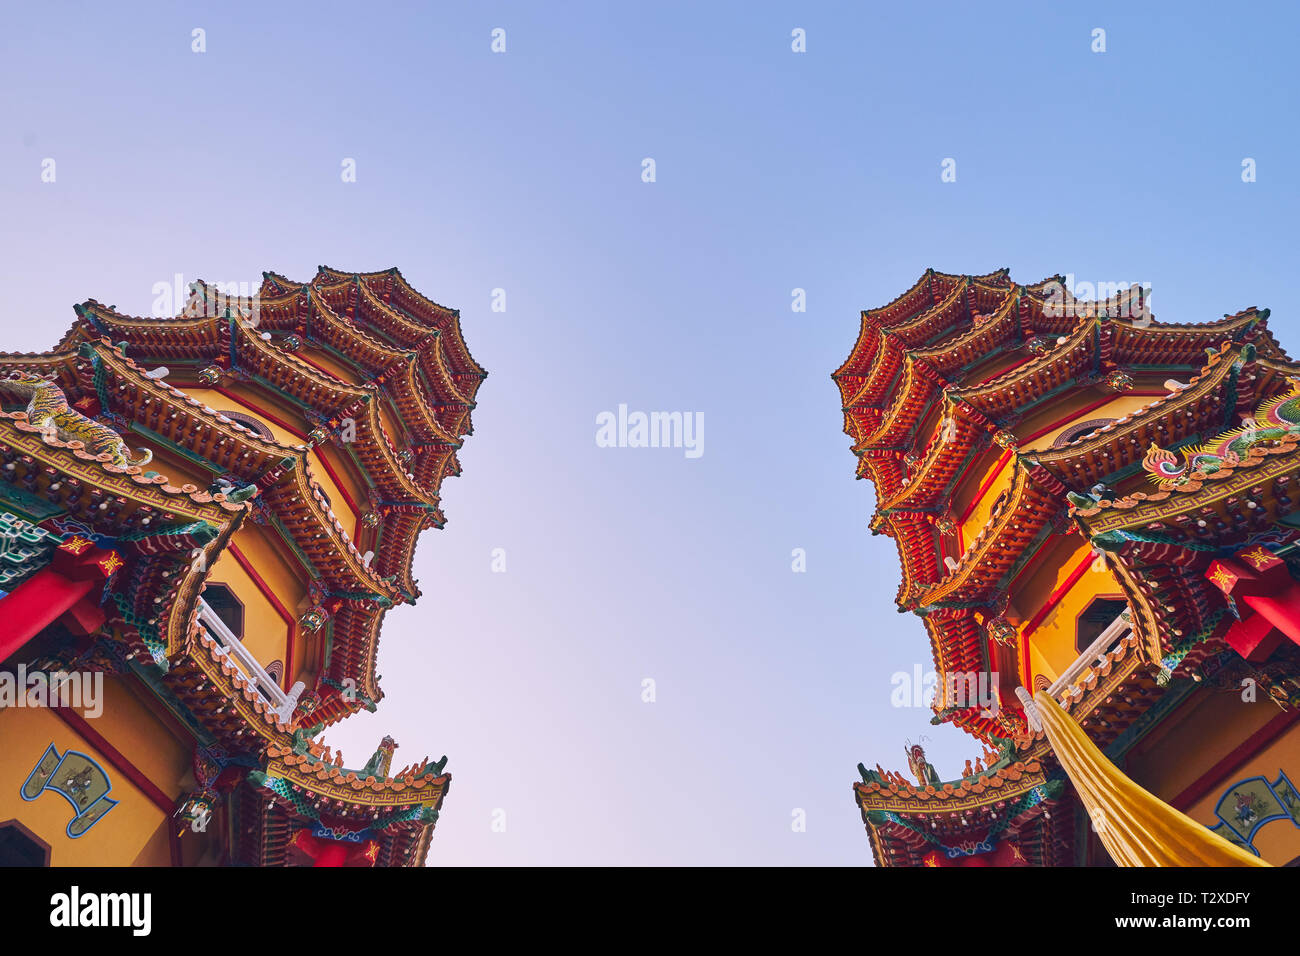 Kaohsiung, Taiwan - December 3, 2018: The Two tower of Cih Ji Dragon and Tiger Pagodas on lotus pond in sunset time at Zuoying district, Kaohsiung cit - Stock Image